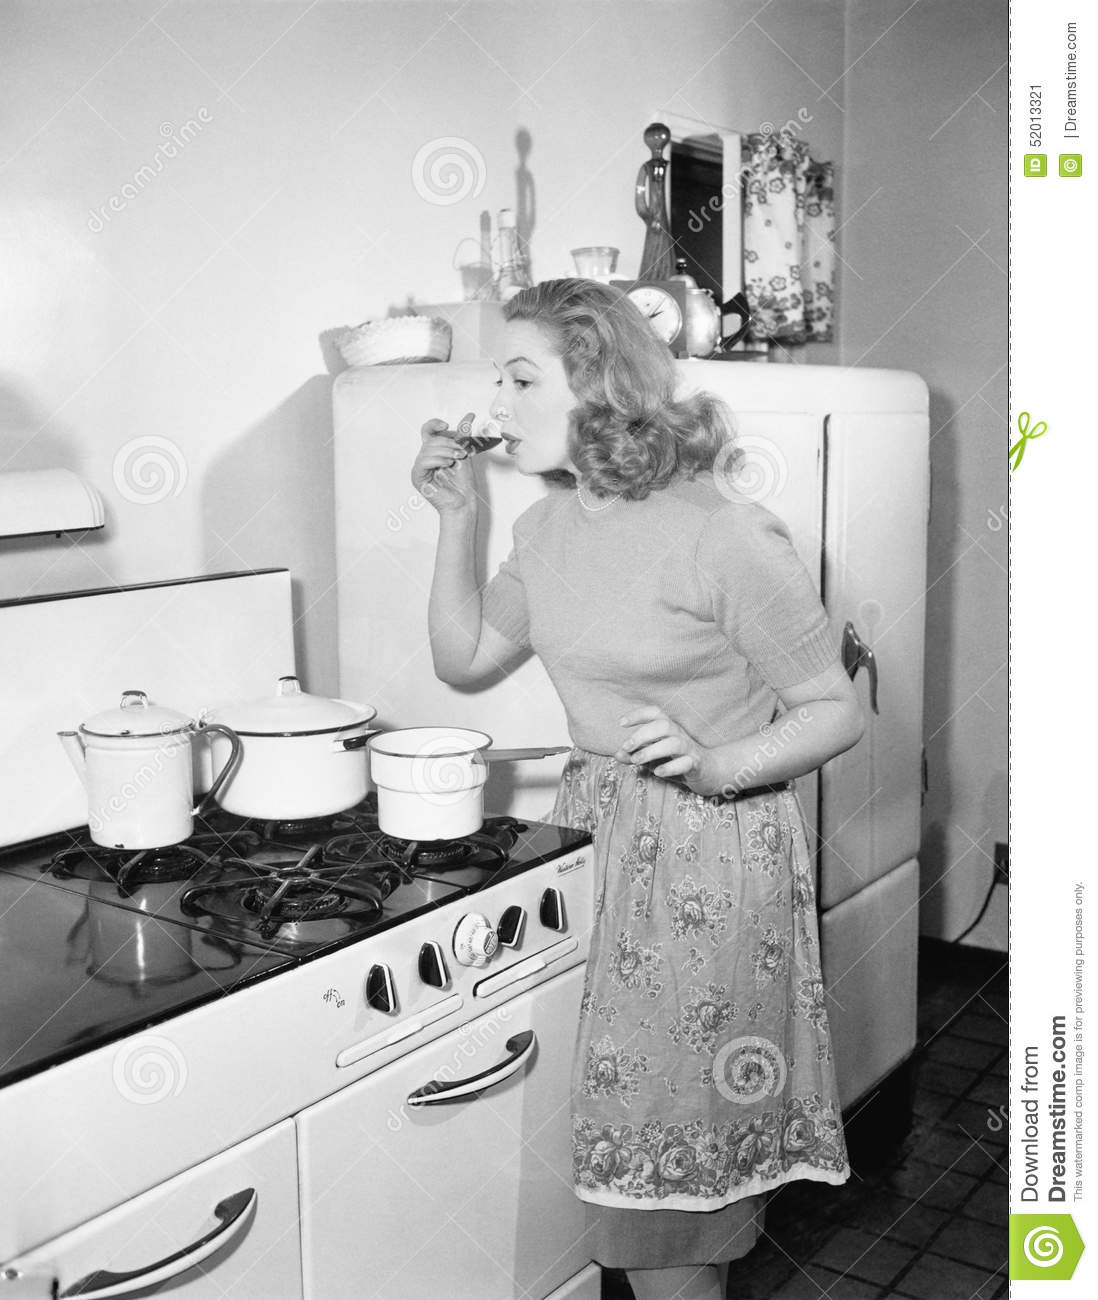 Retro Woman In Kitchen: Vintage Woman With Cooking Pot Cartoon Vector